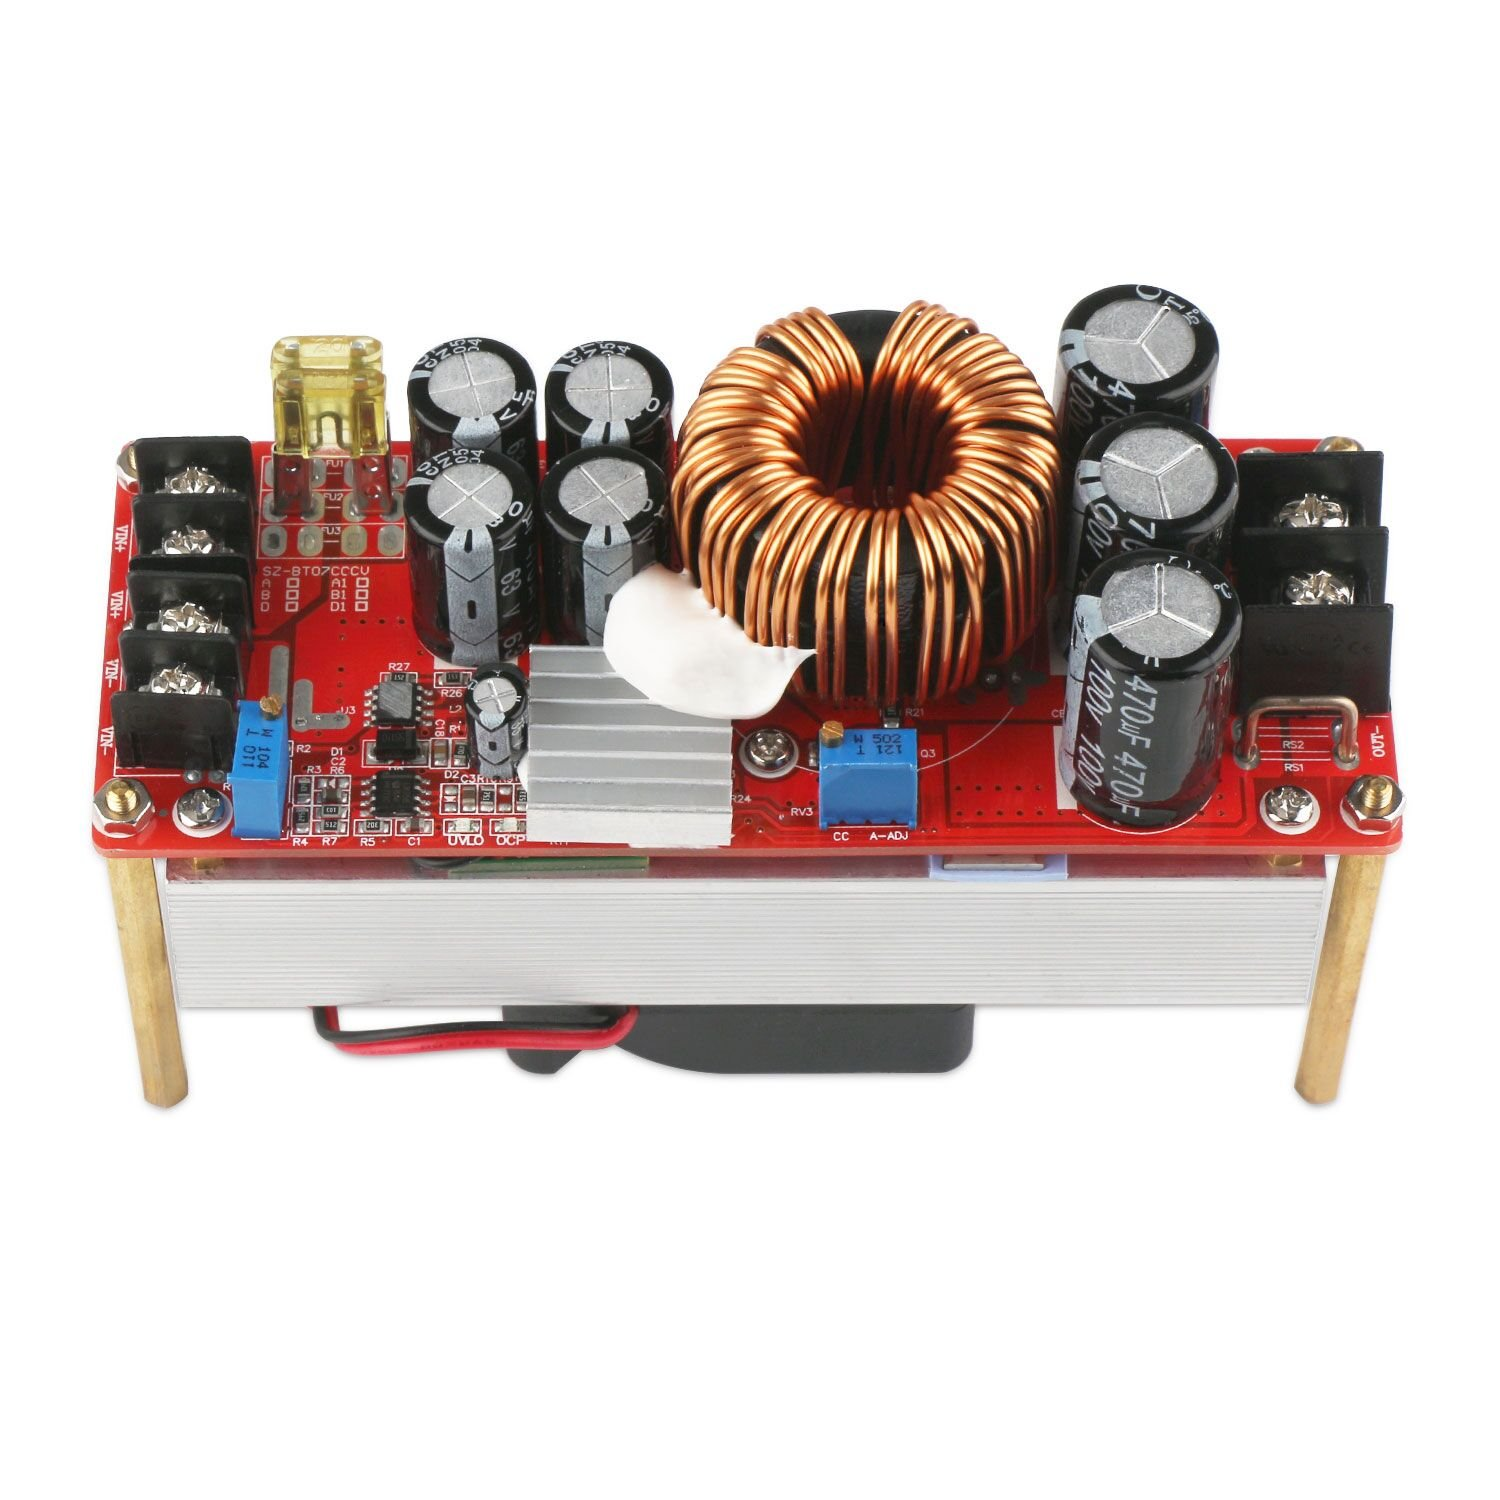 Cheap 60v Power Supply Circuit Find Deals Low Voltage Dc Converter Powersupplycircuit Get Quotations Boost Drok 1500w Regulator Booster 10v 12v Step Up